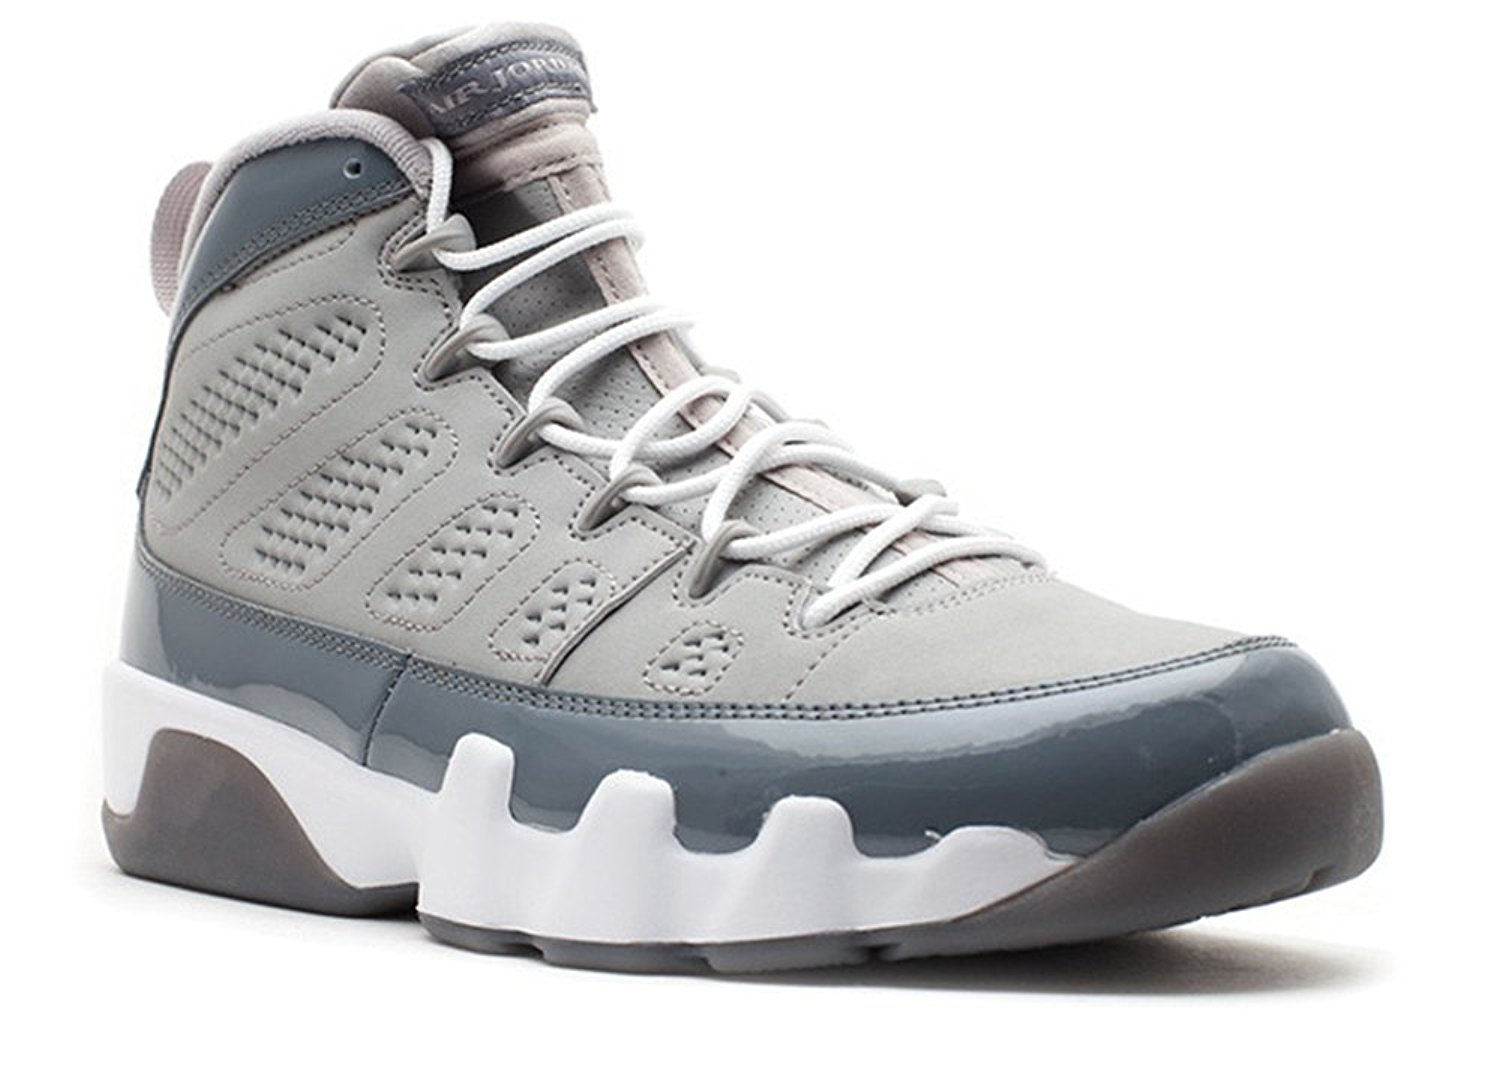 7acc4d5aad51 Ambar Zuiga Jurado Synthetic Basketball Shoe Air Jordan 9 Retro cool Grey  2012 release medium grey